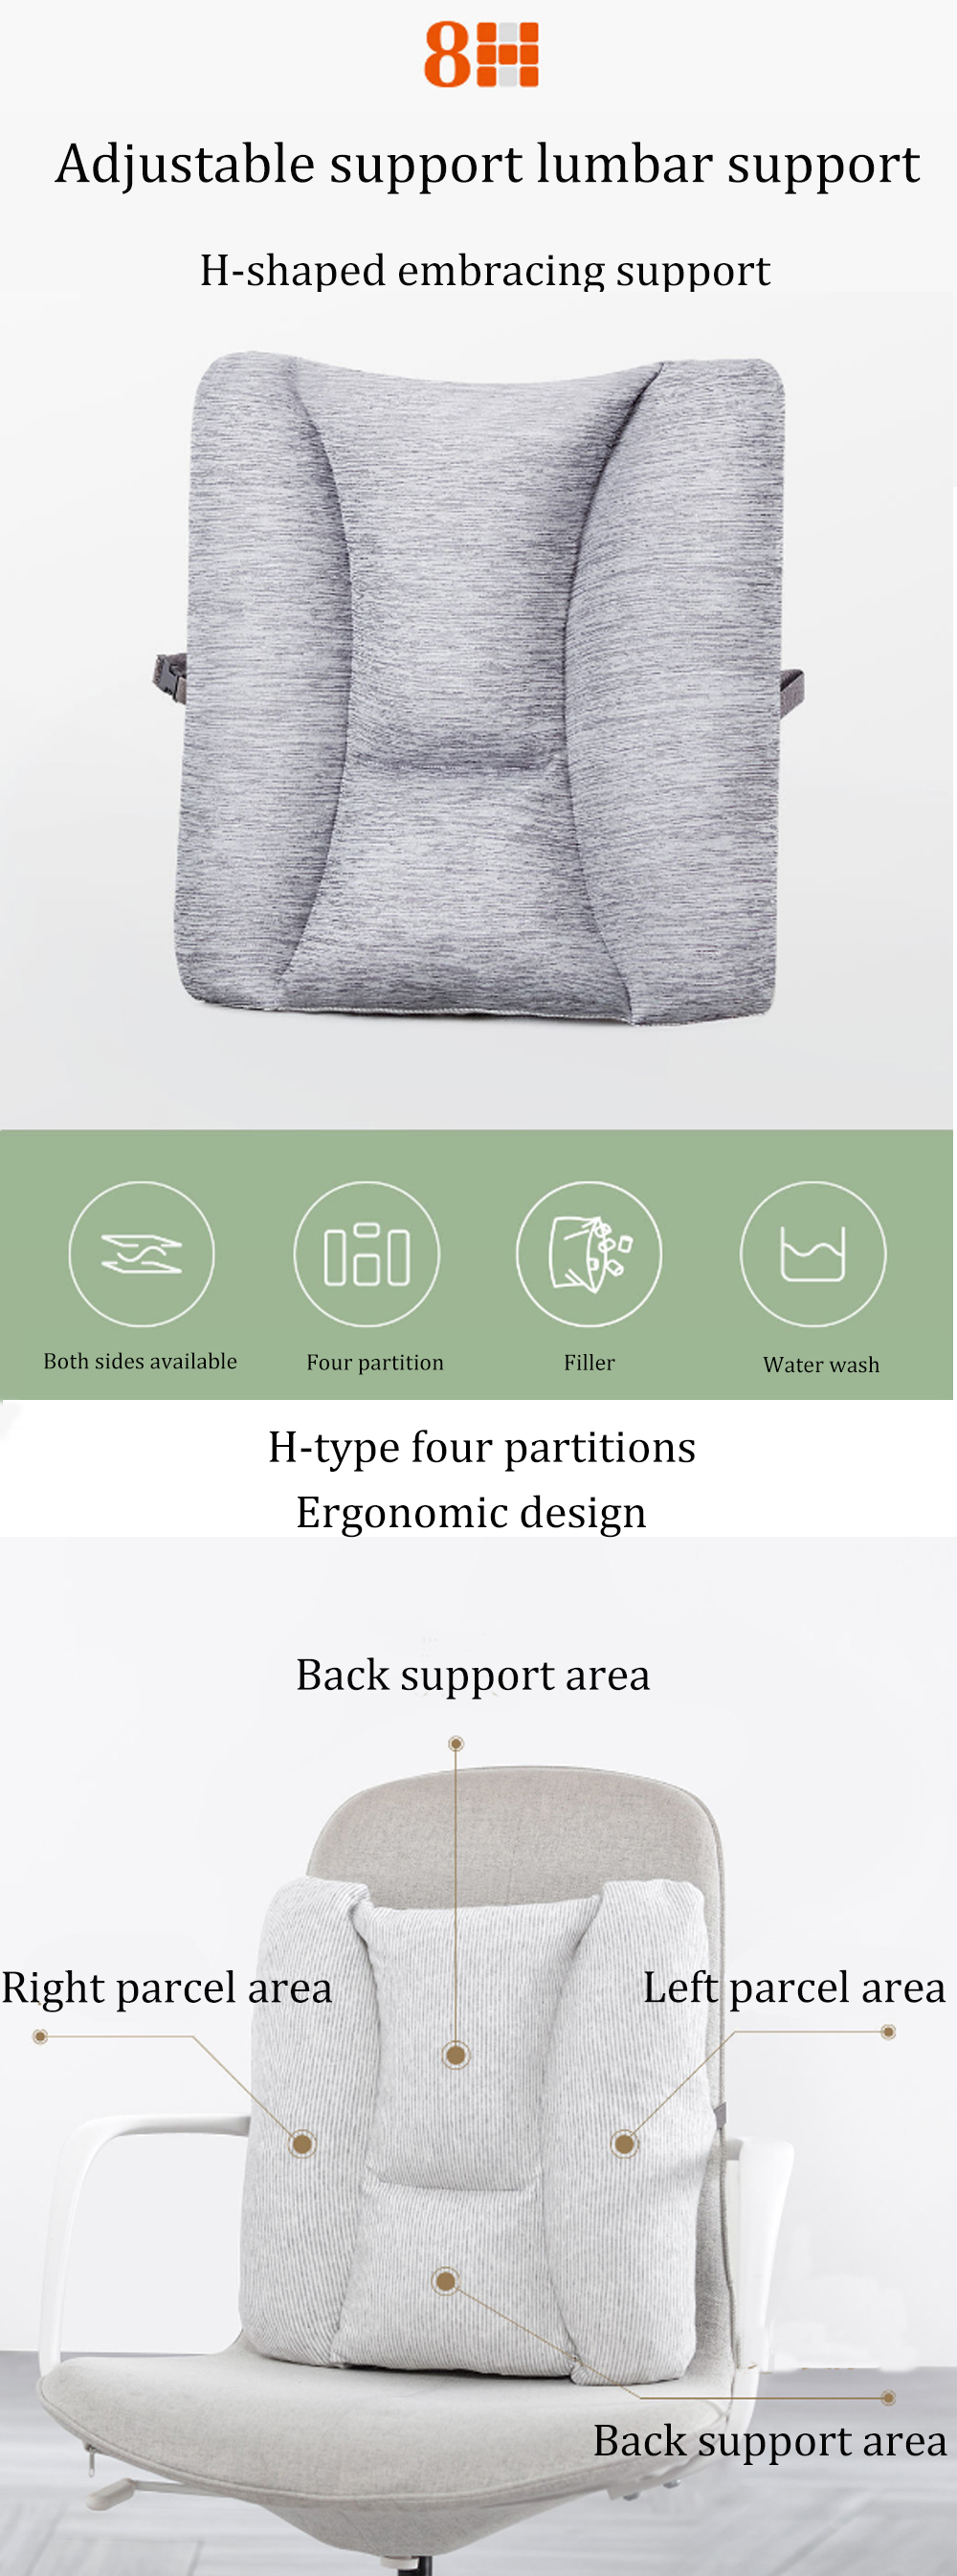 Xiaomi 8H Lumbar Cushion Soft Memory Foam Pillow Protect Lumbar For Camping Office Car Rest